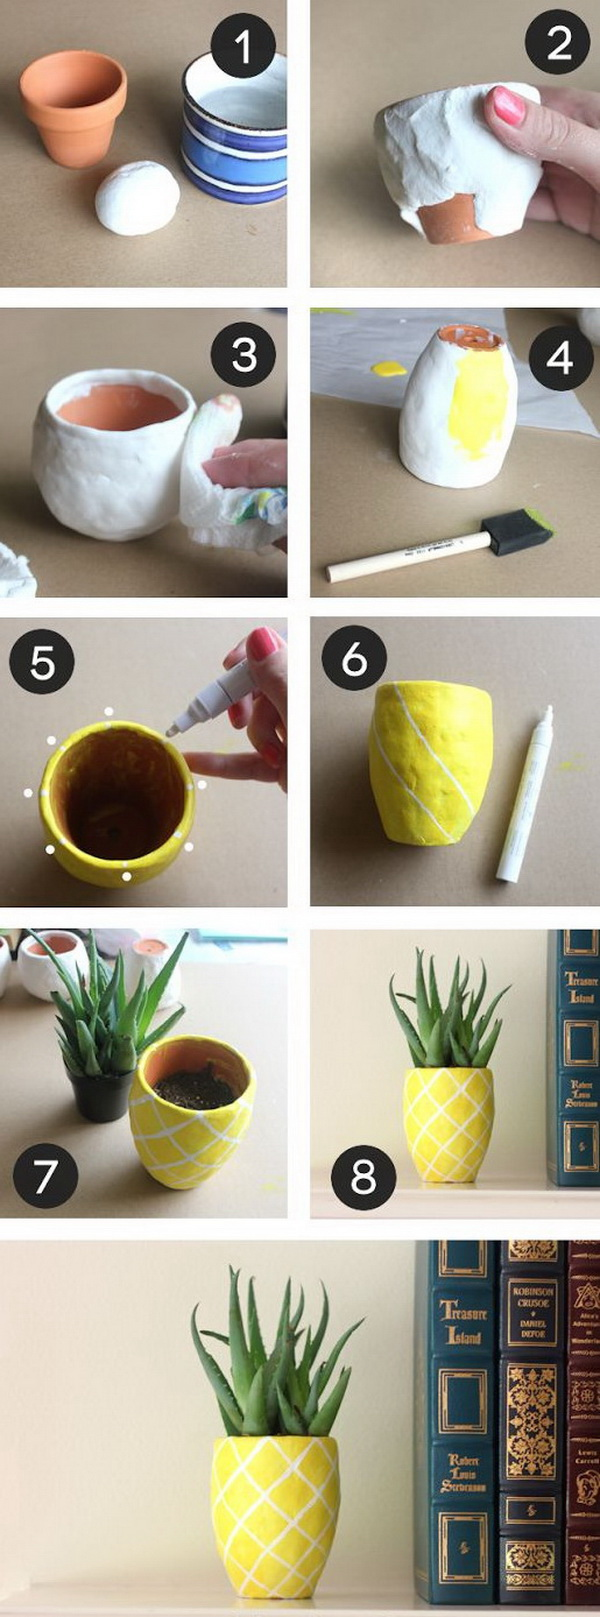 DIY Succulent Pineapple Planter. Turn a regular terra cotta pot into the cutes and fun pineapple planter with air dry clay. Perfect for your desk, or make as a gift for your friends and coworkers!